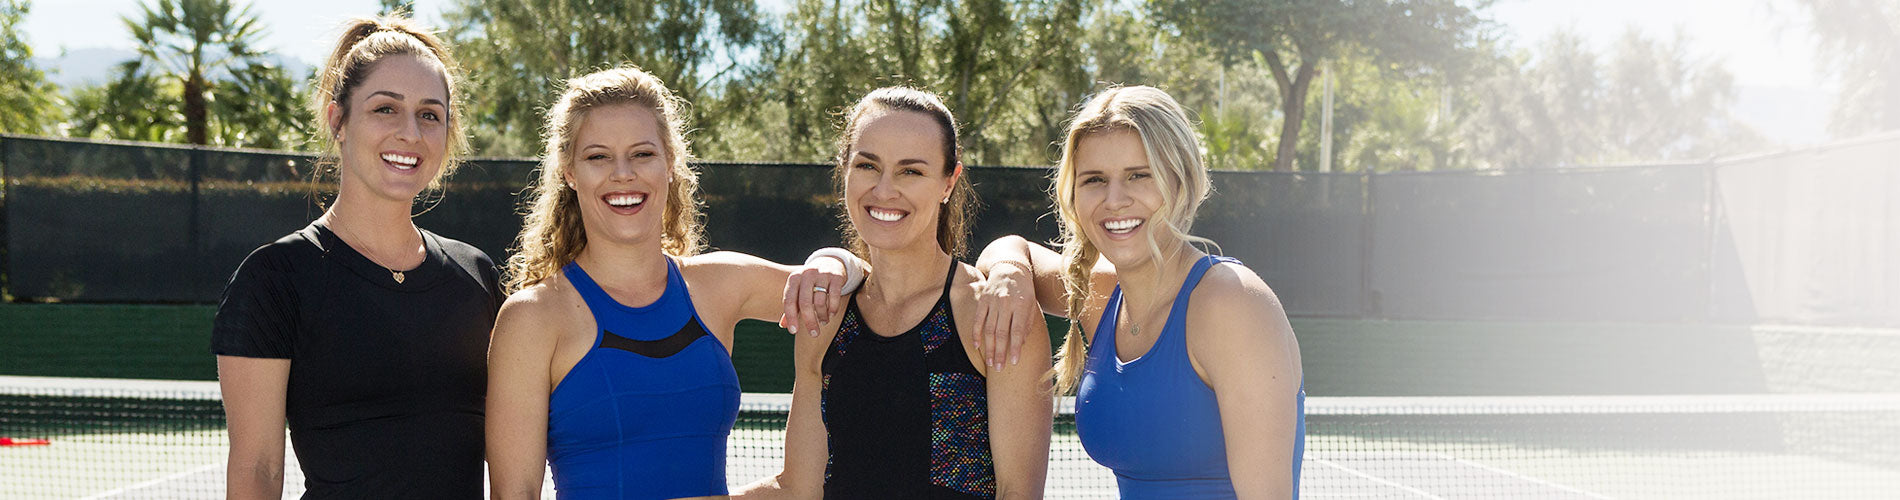 Tonic Tennis collaboration with Martina Hingis